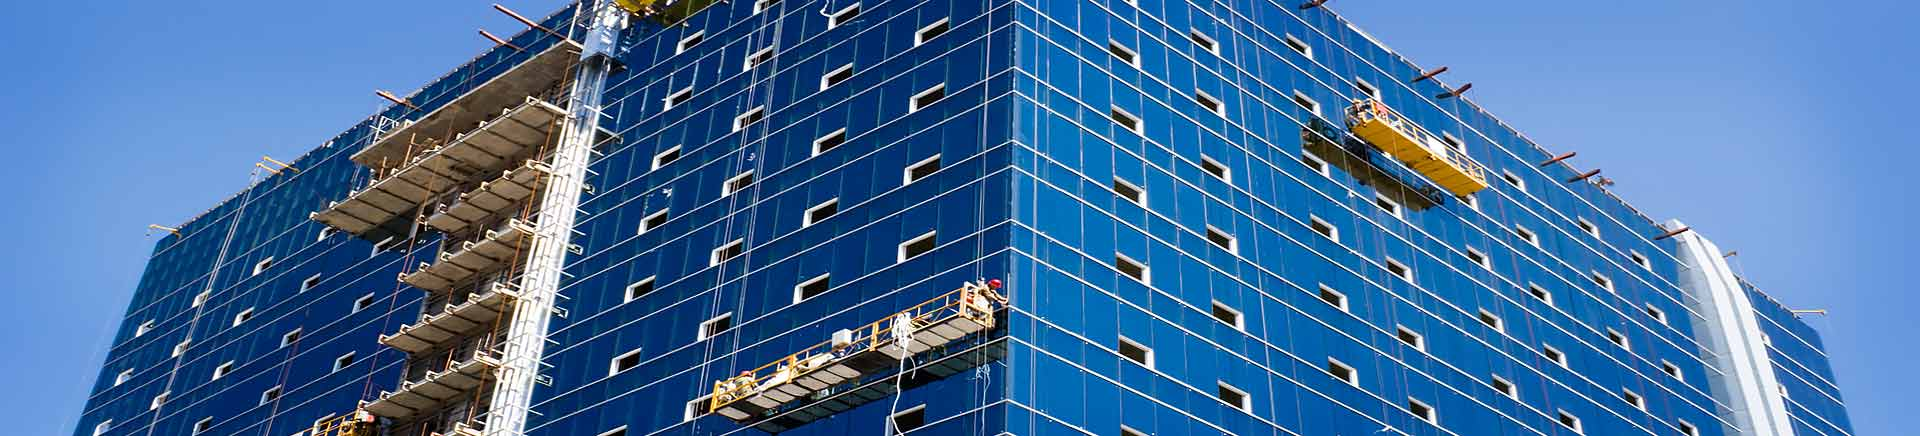 Facade-Access-Design-and-Engineering-r2